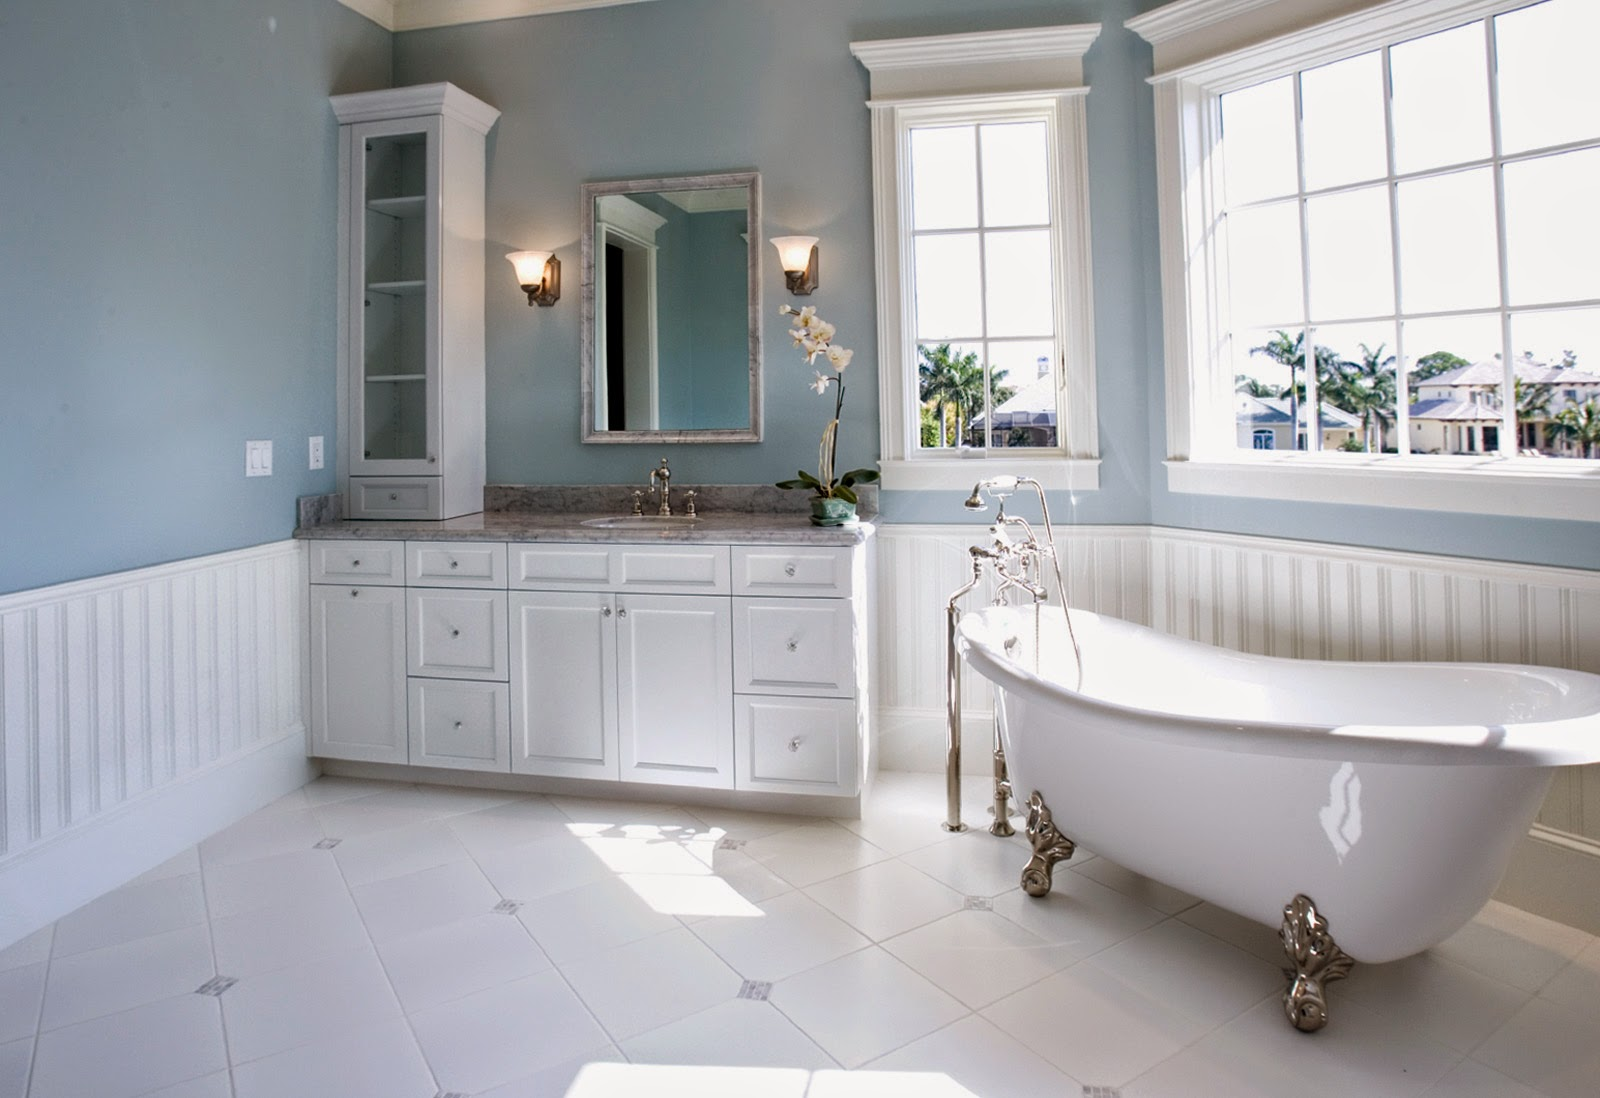 Top 10 beautiful bathroom design 2014 home interior blog for Beautiful small bathroom designs